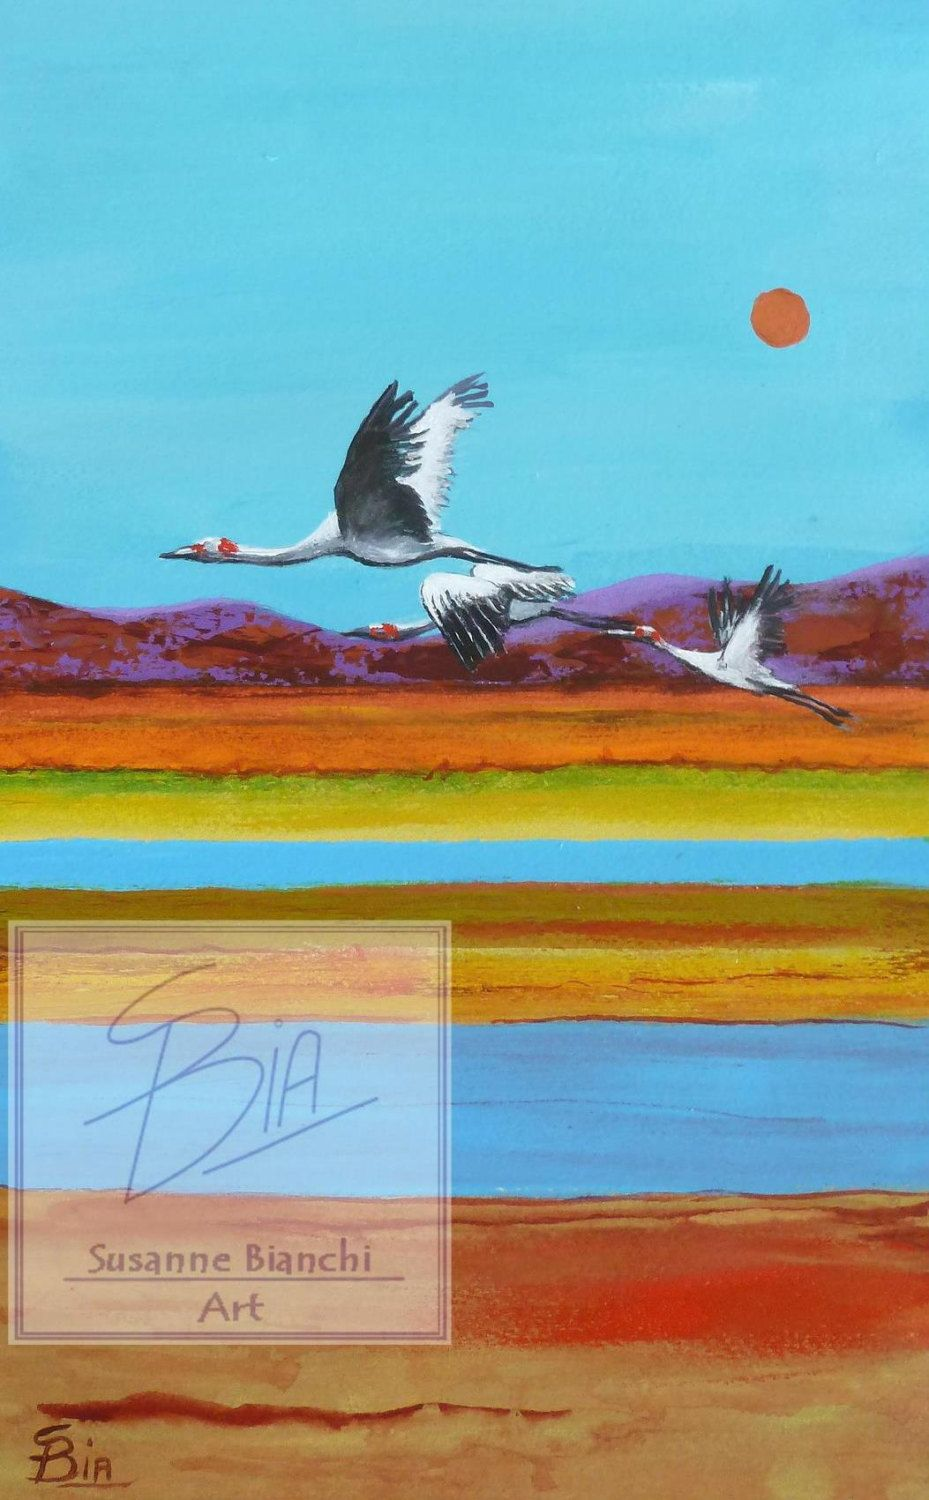 Flying Brolgas, Australian outback, Peaceful Poster, Print of ...